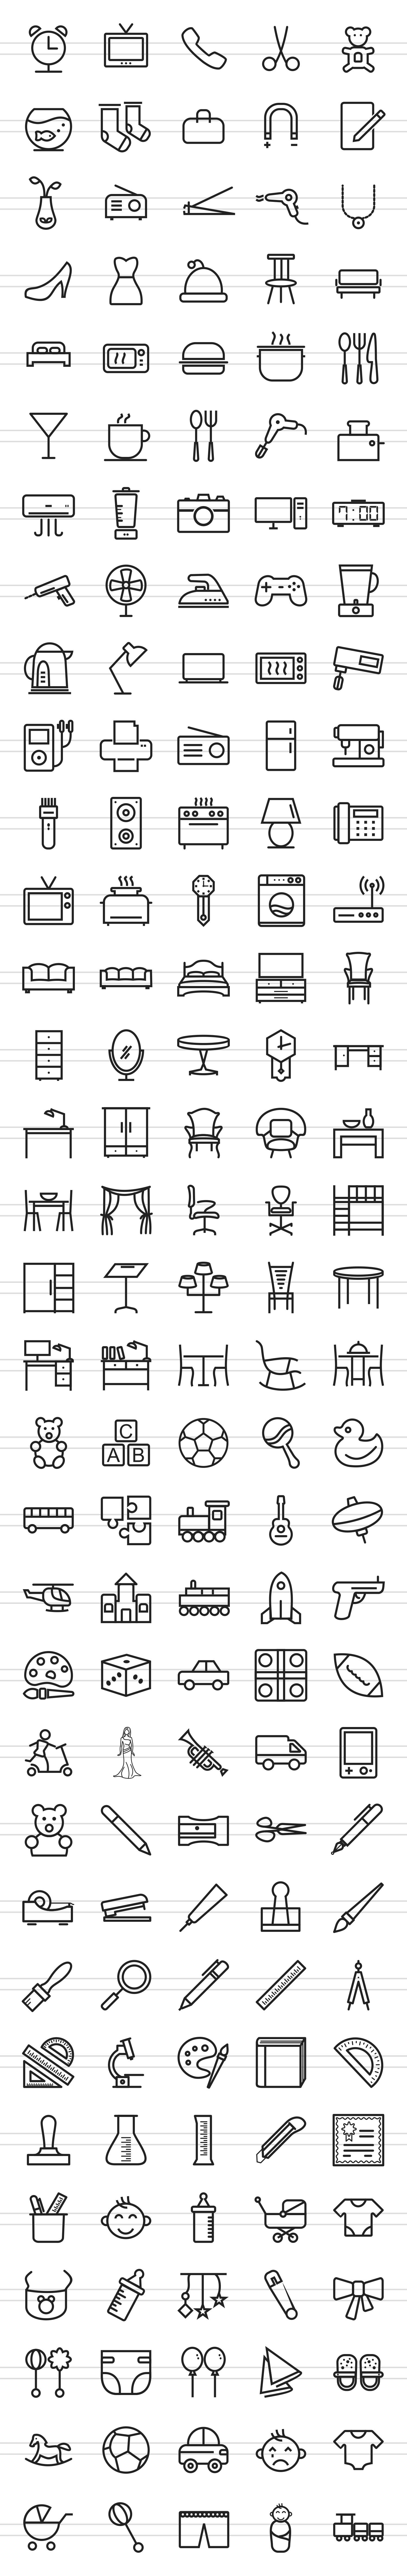 166 Objects Line Icons example image 2